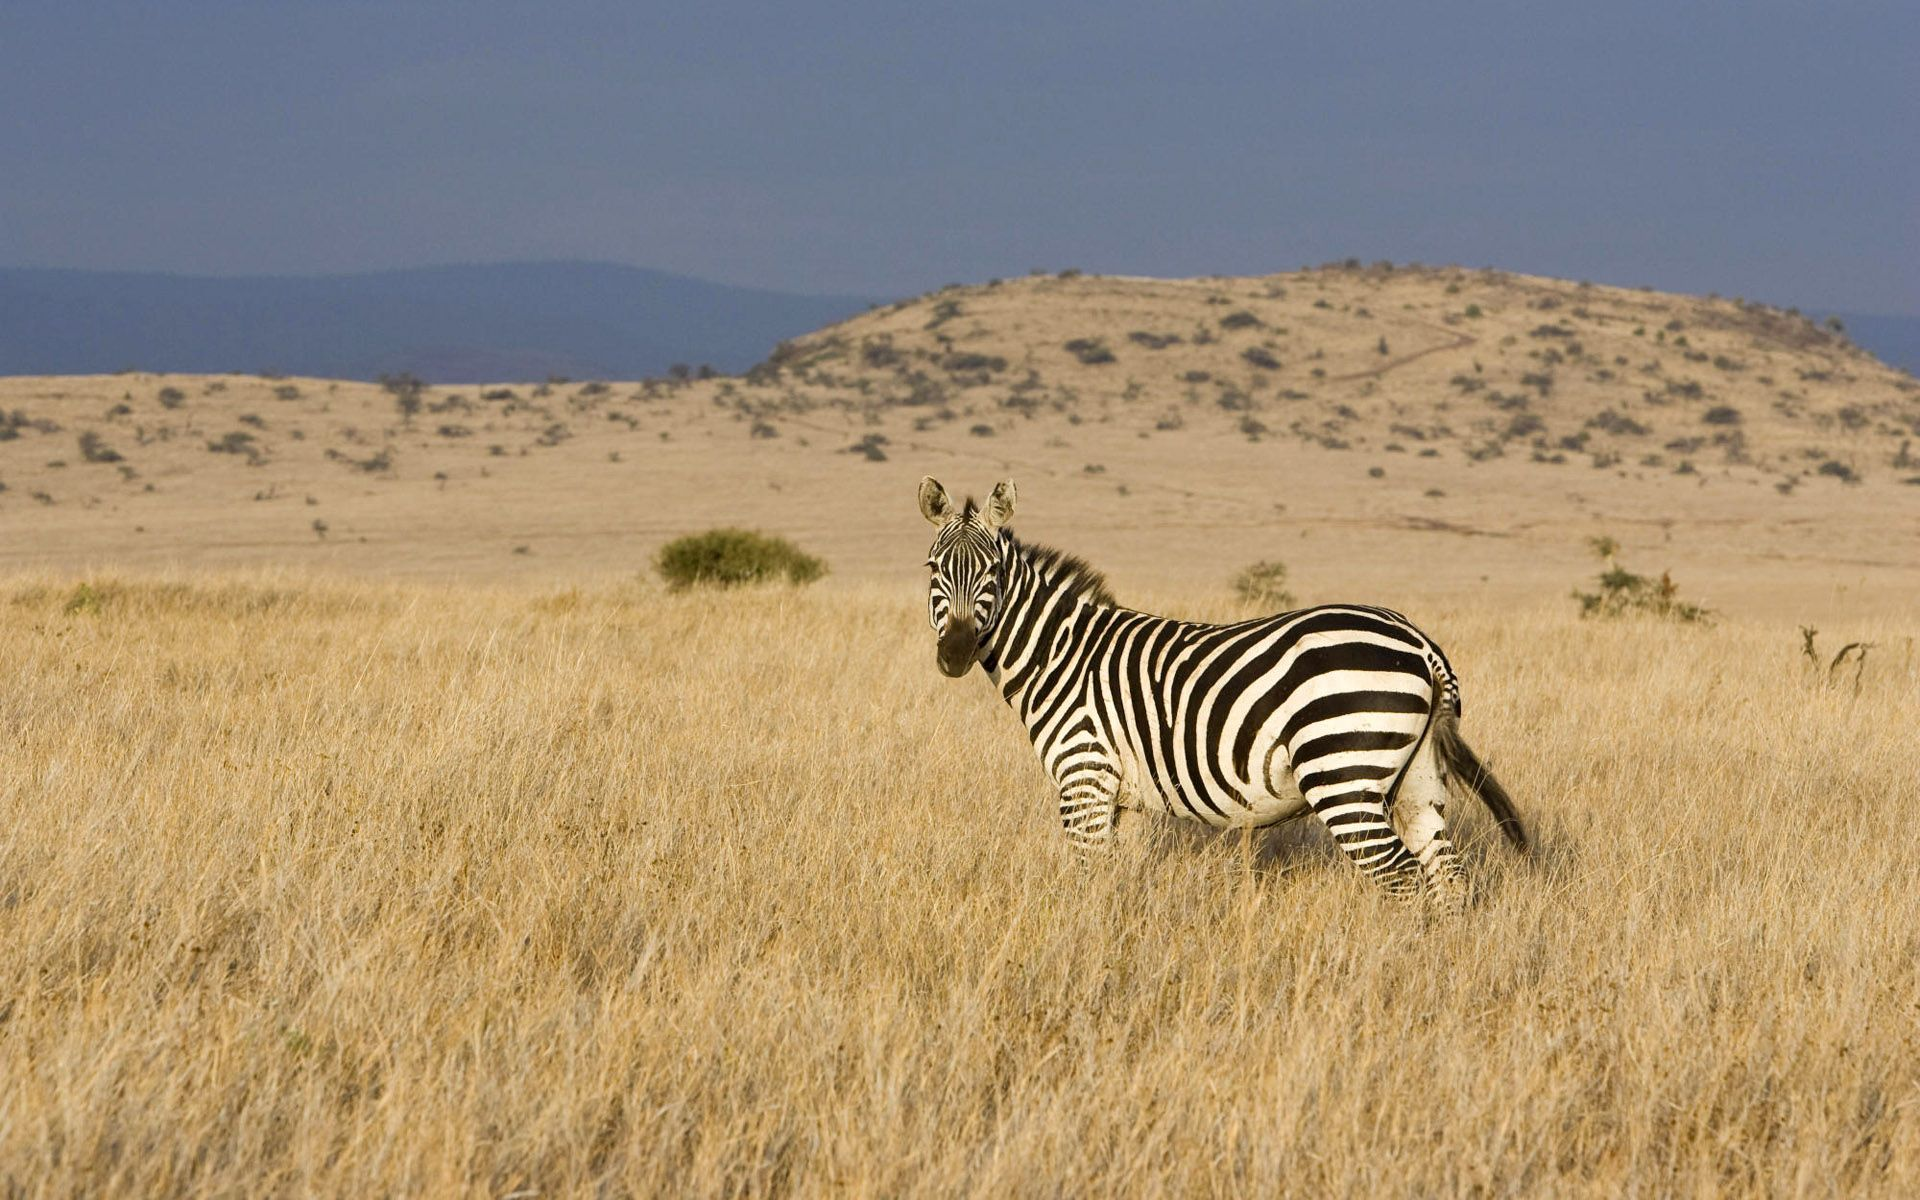 93089 download wallpaper Animals, Zebra, Grass, Striped, Climb, Valley, Steppe screensavers and pictures for free